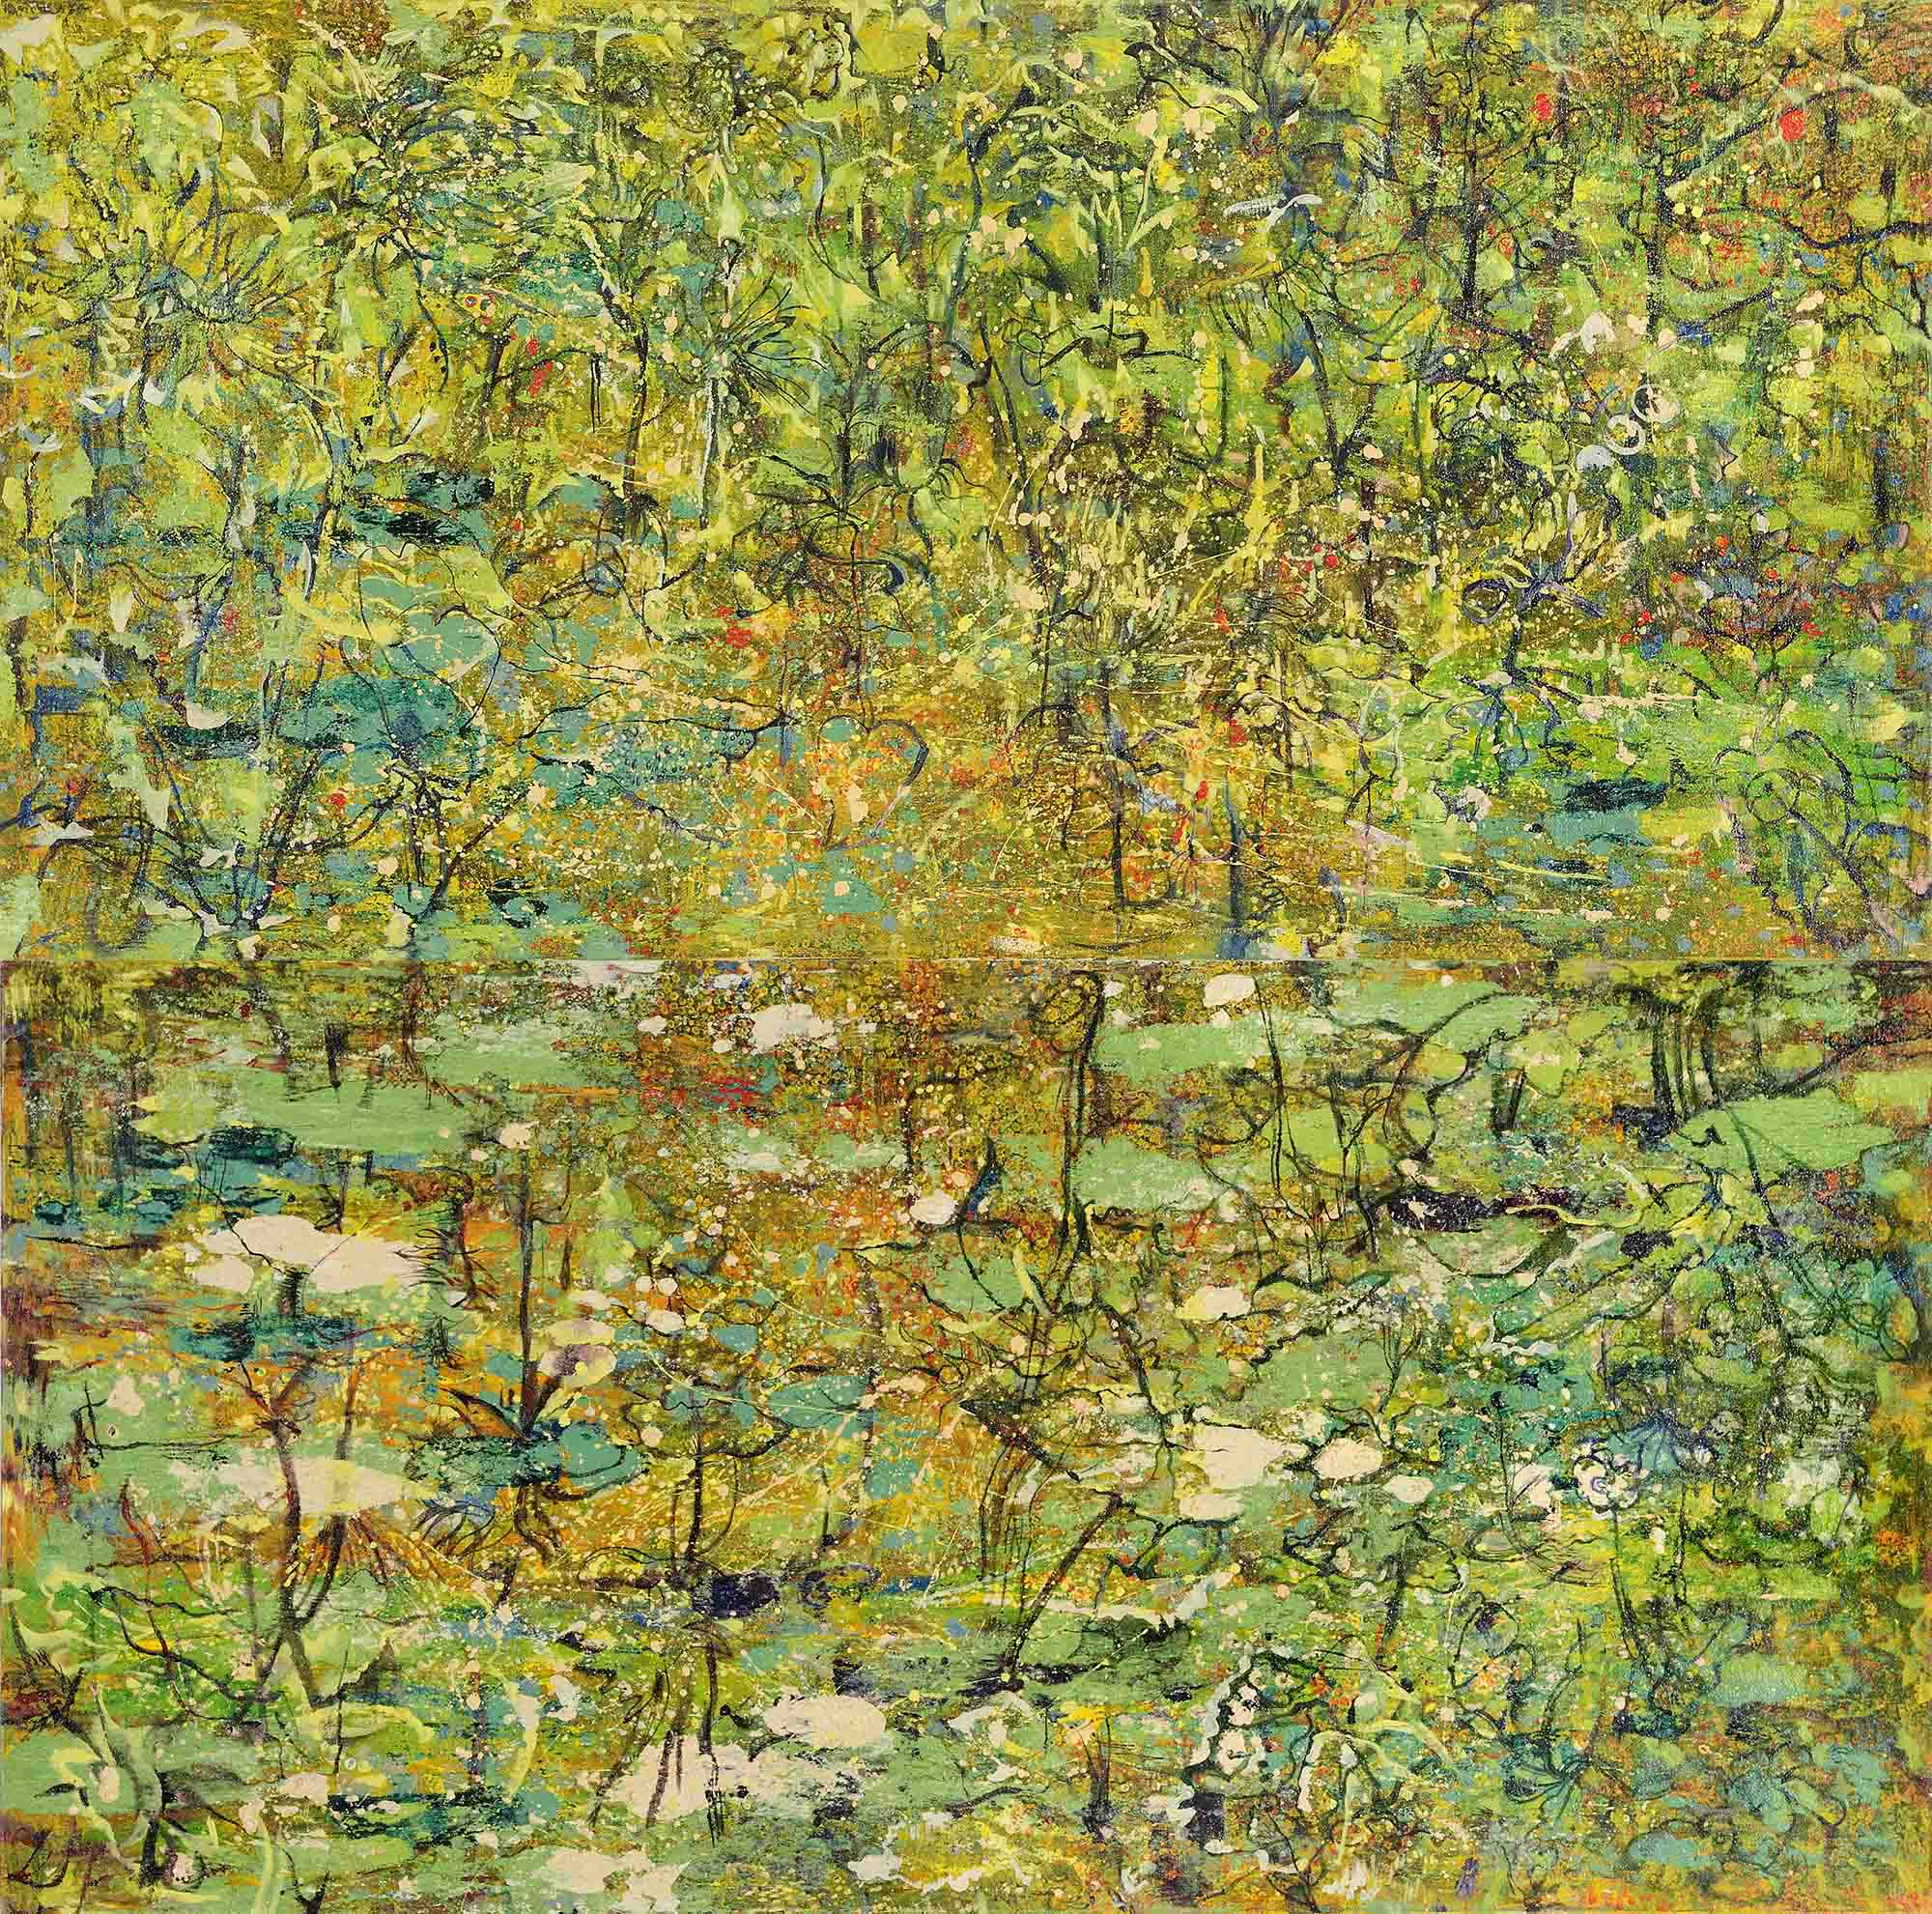 Yau Bee Ling - Living Pond (2019) Combined Oil and sand medium on canvas; 153cm x 306cm (Diptych) bottom